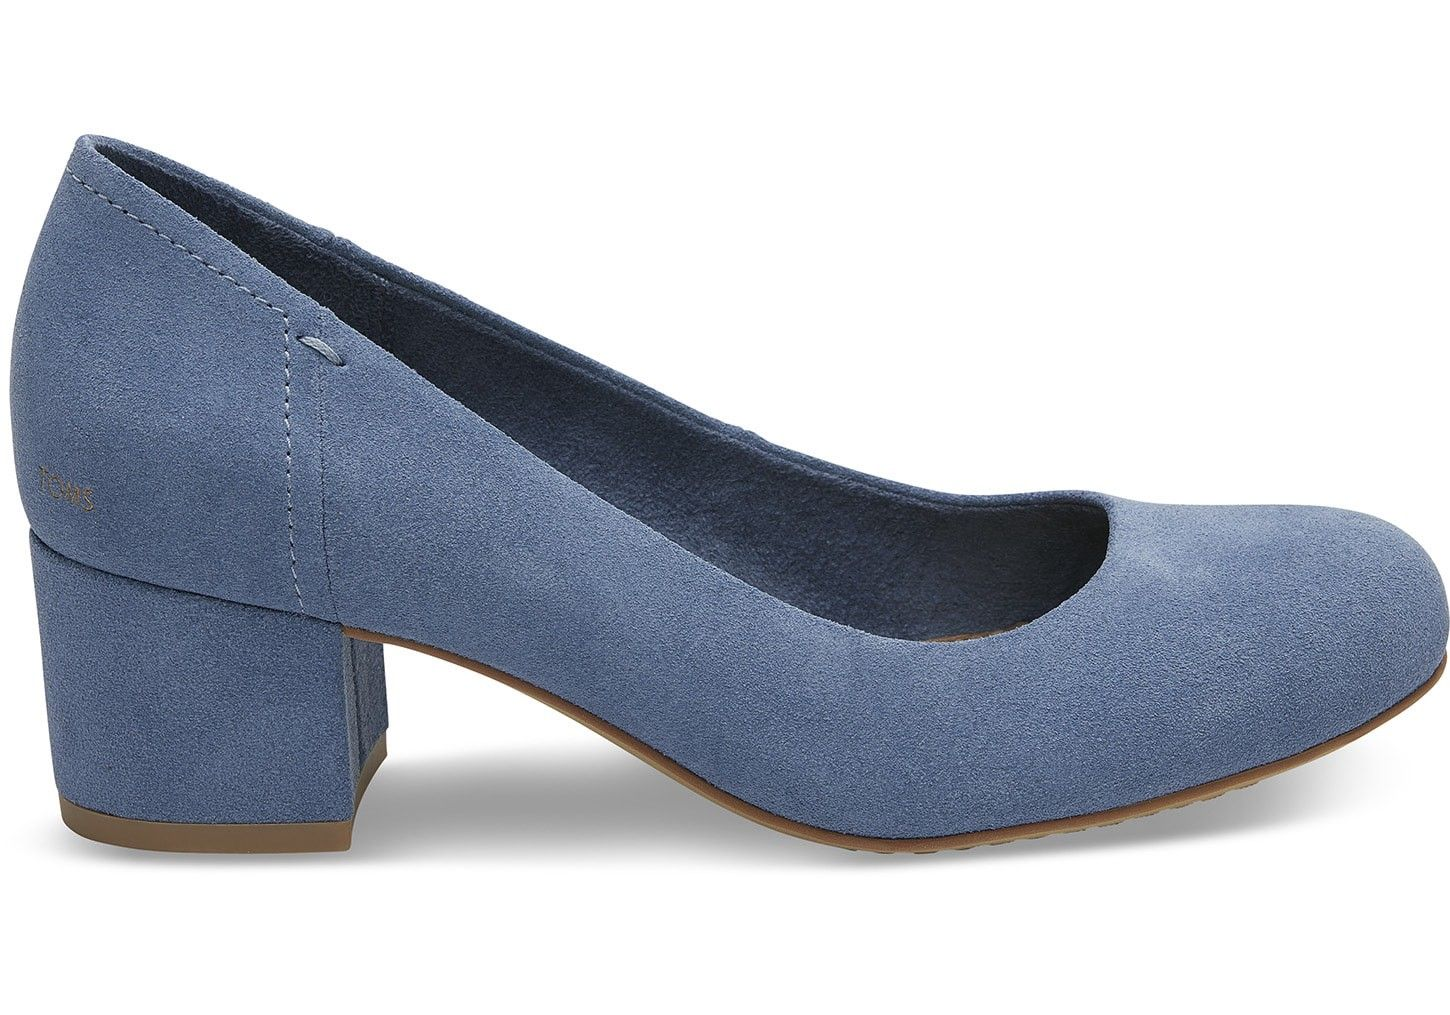 4cbc03358649 Toms Infinity Blue Suede Women s Beverly Pumps Shoes - 7.5 ...